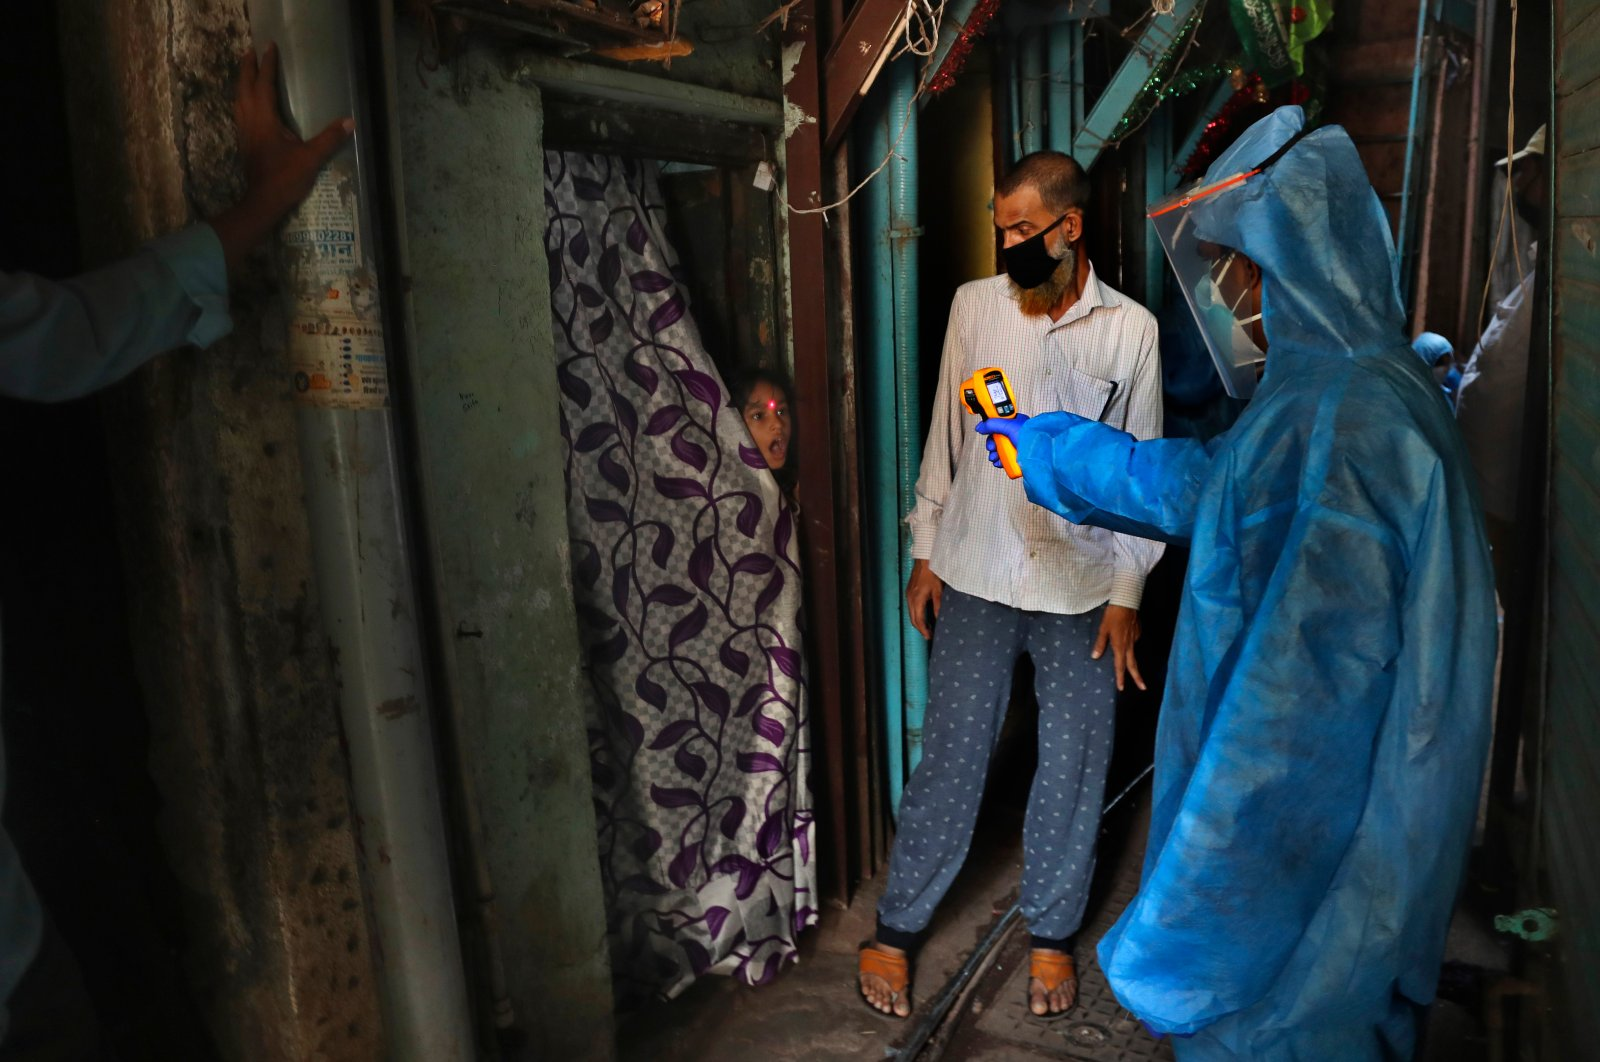 A doctor checks the temperature of a girl in Dharavi, one of Asia's largest slums, during lockdown to prevent the spread of the coronavirus in Mumbai, India. Monday, April 13, 2020. (AP Photo)